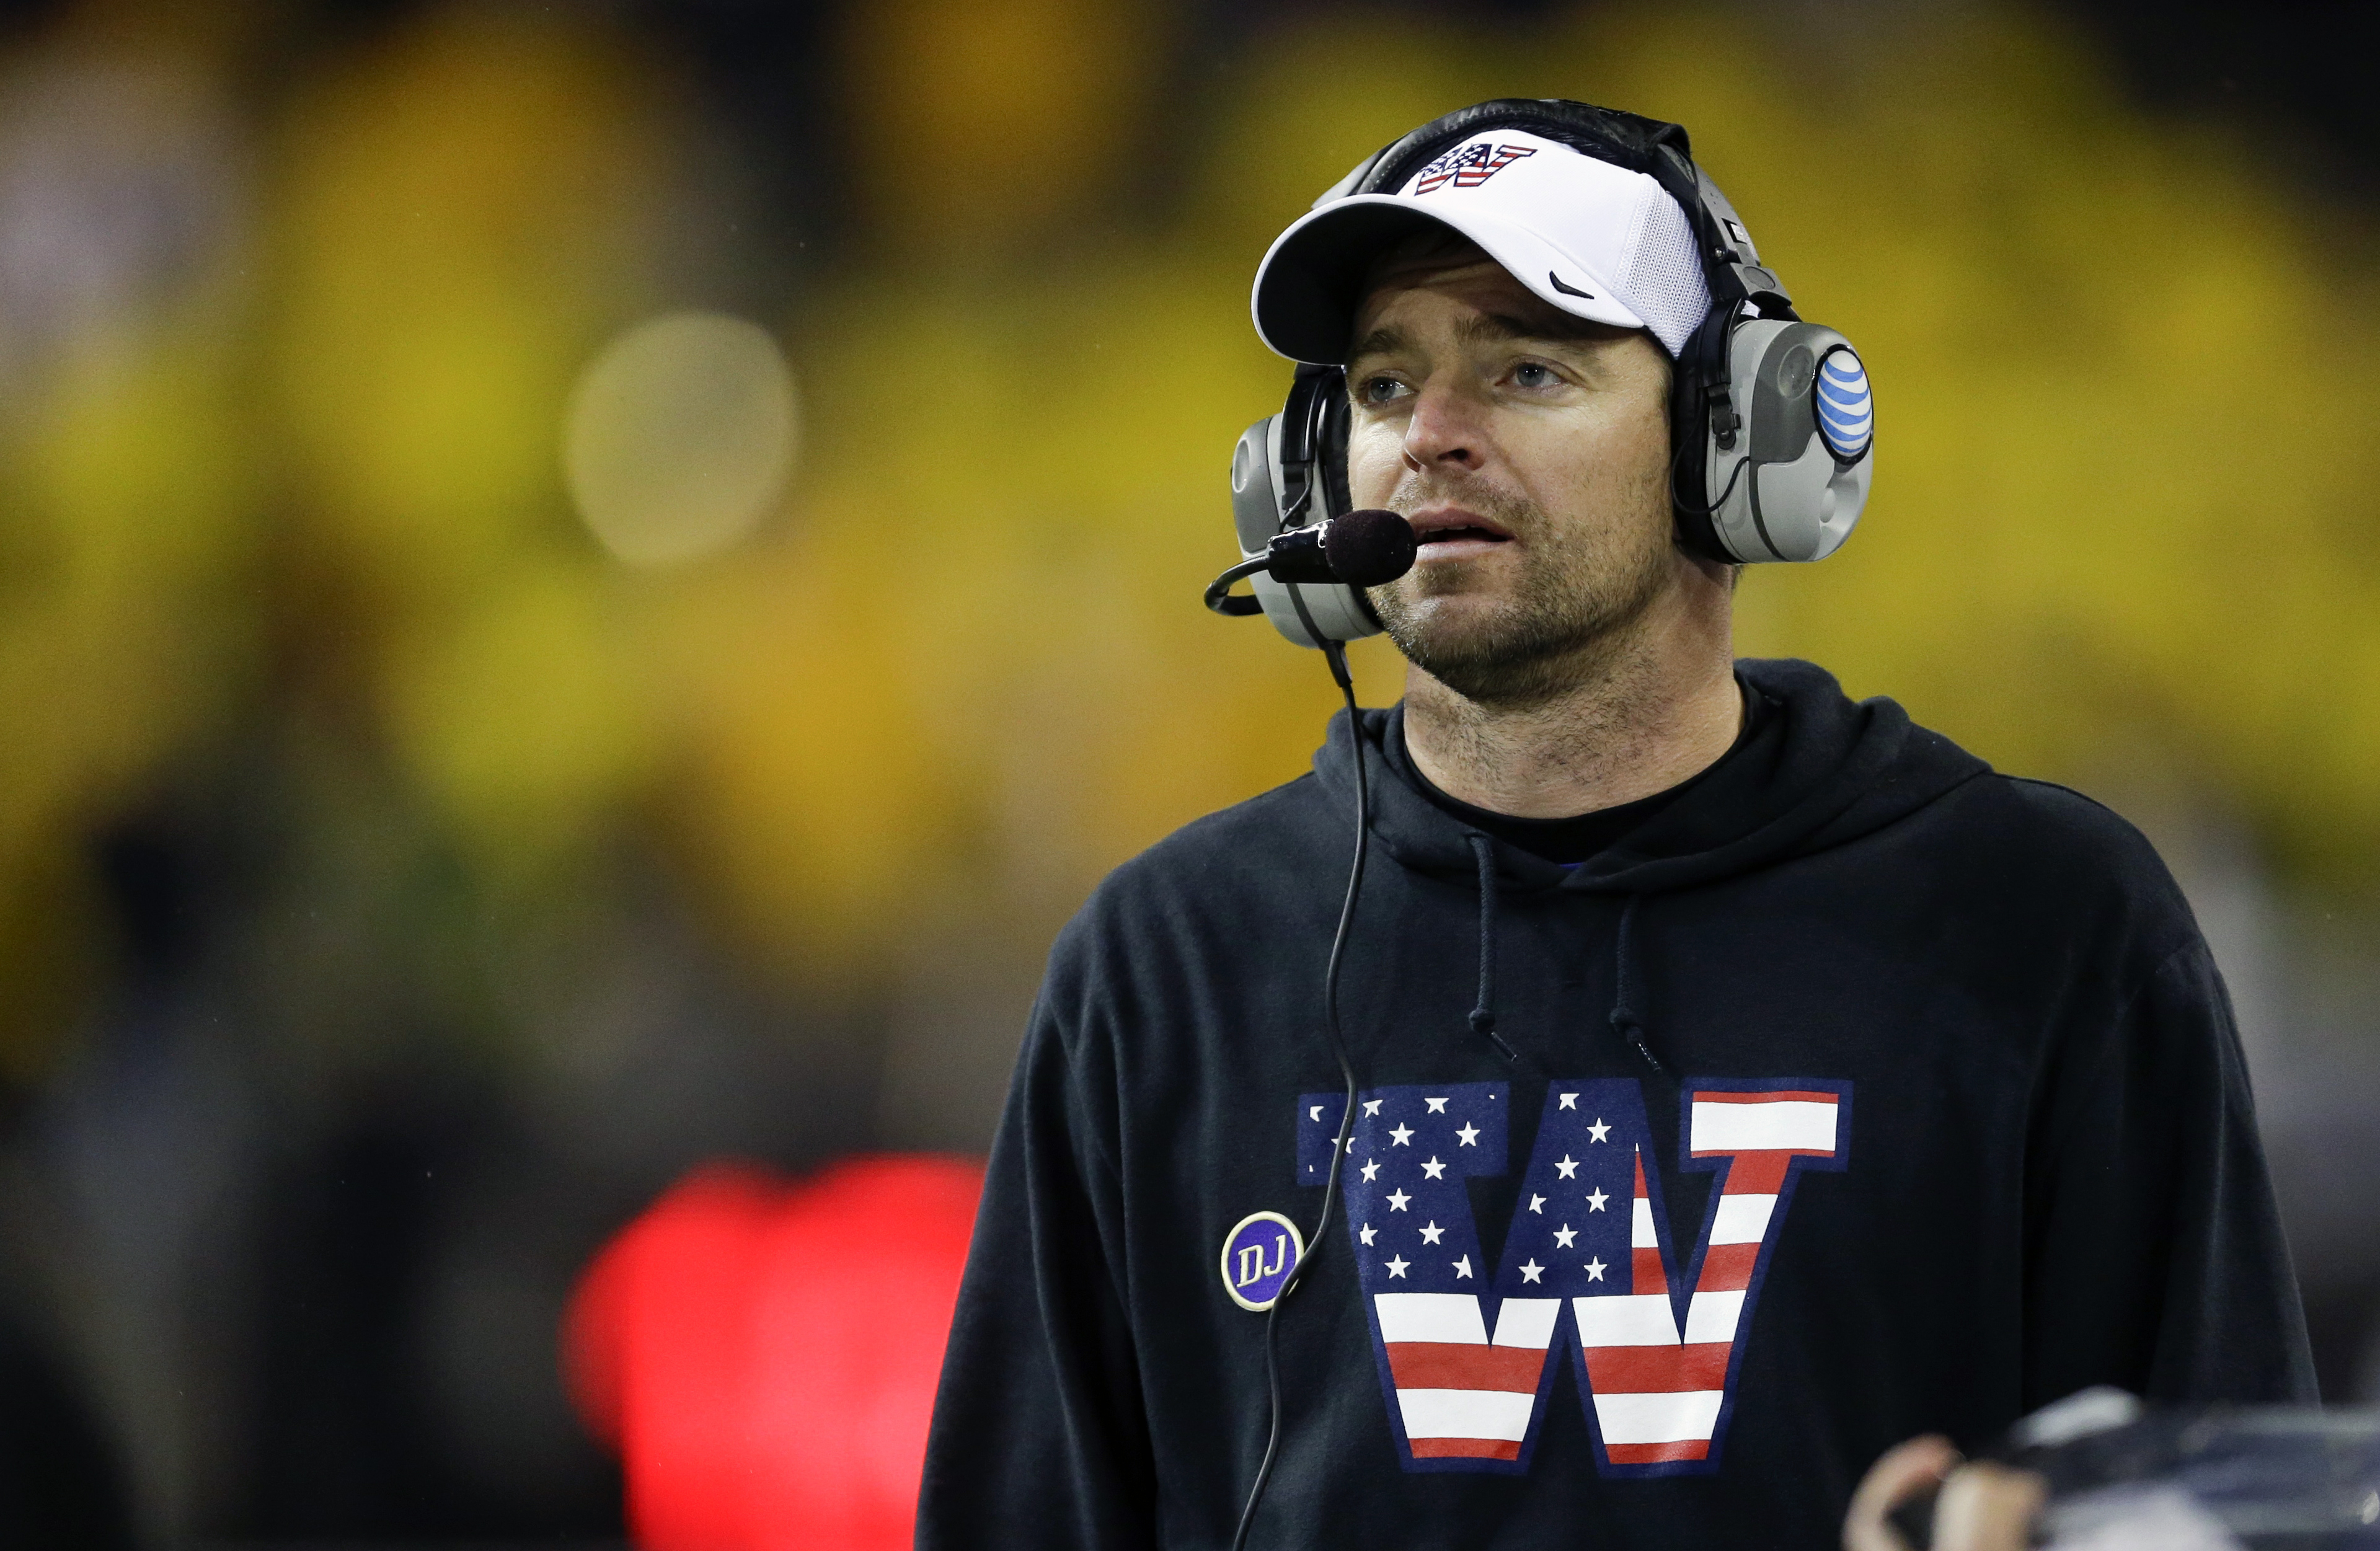 FILE - In this Nov. 9, 2013, file photo, Washington's defensive coordinator Justin Wilcox wears a sweatshirt and cap with a special team logo to honor veterans as he coaches against Colorado in the second half of an NCAA college football game in Seattle.